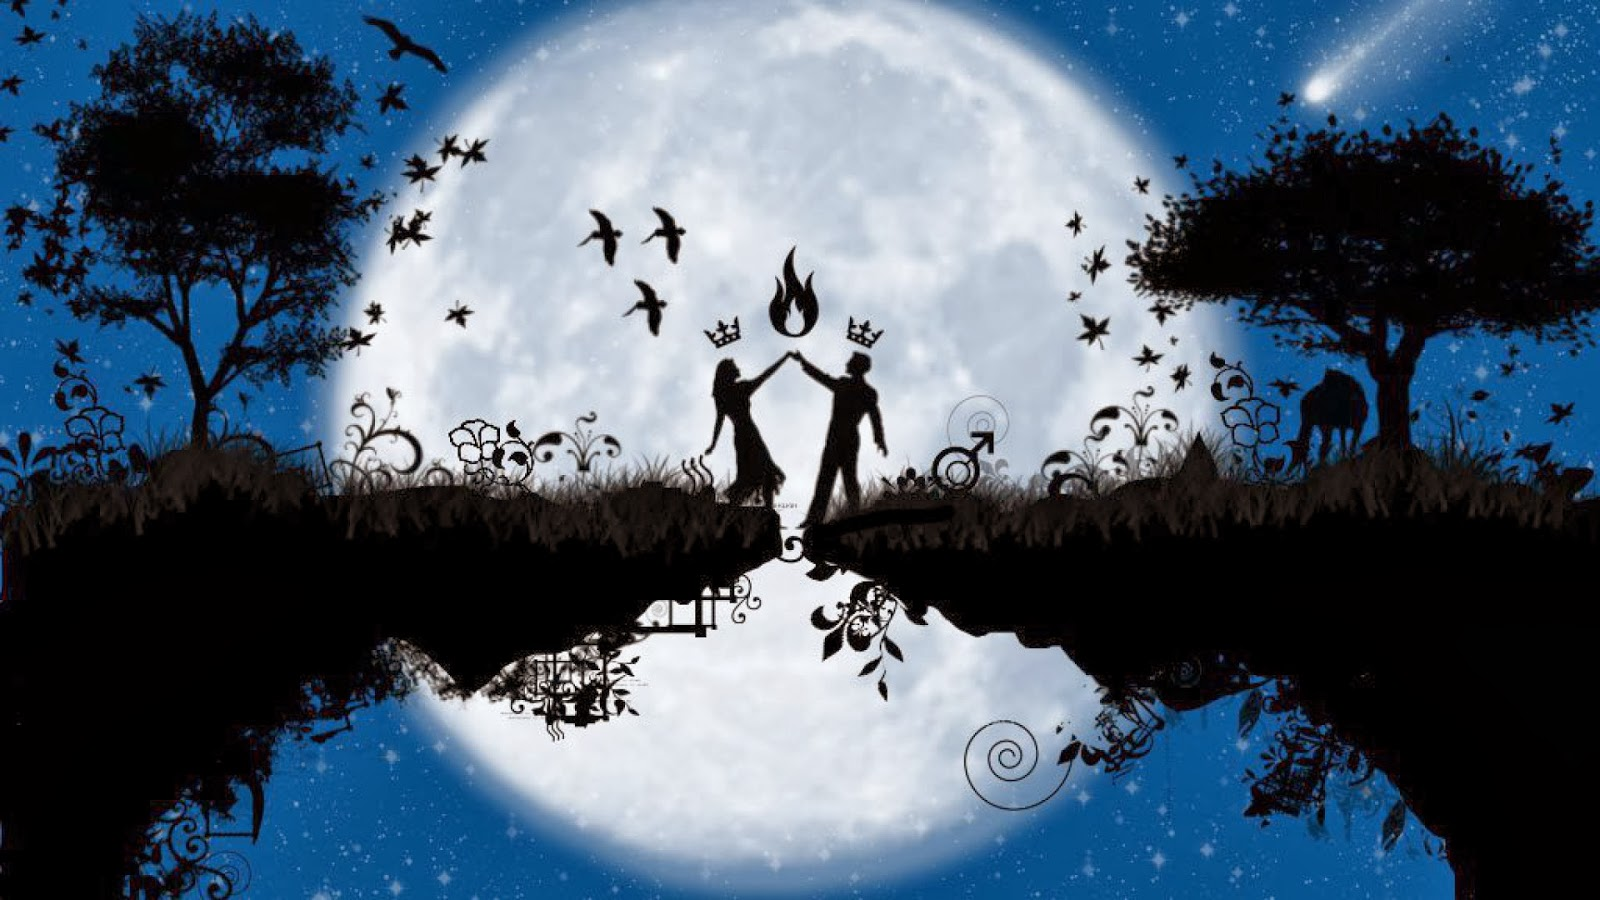 Love-pair-dance-in-moon-light-PSD-template-HD-images.jpg